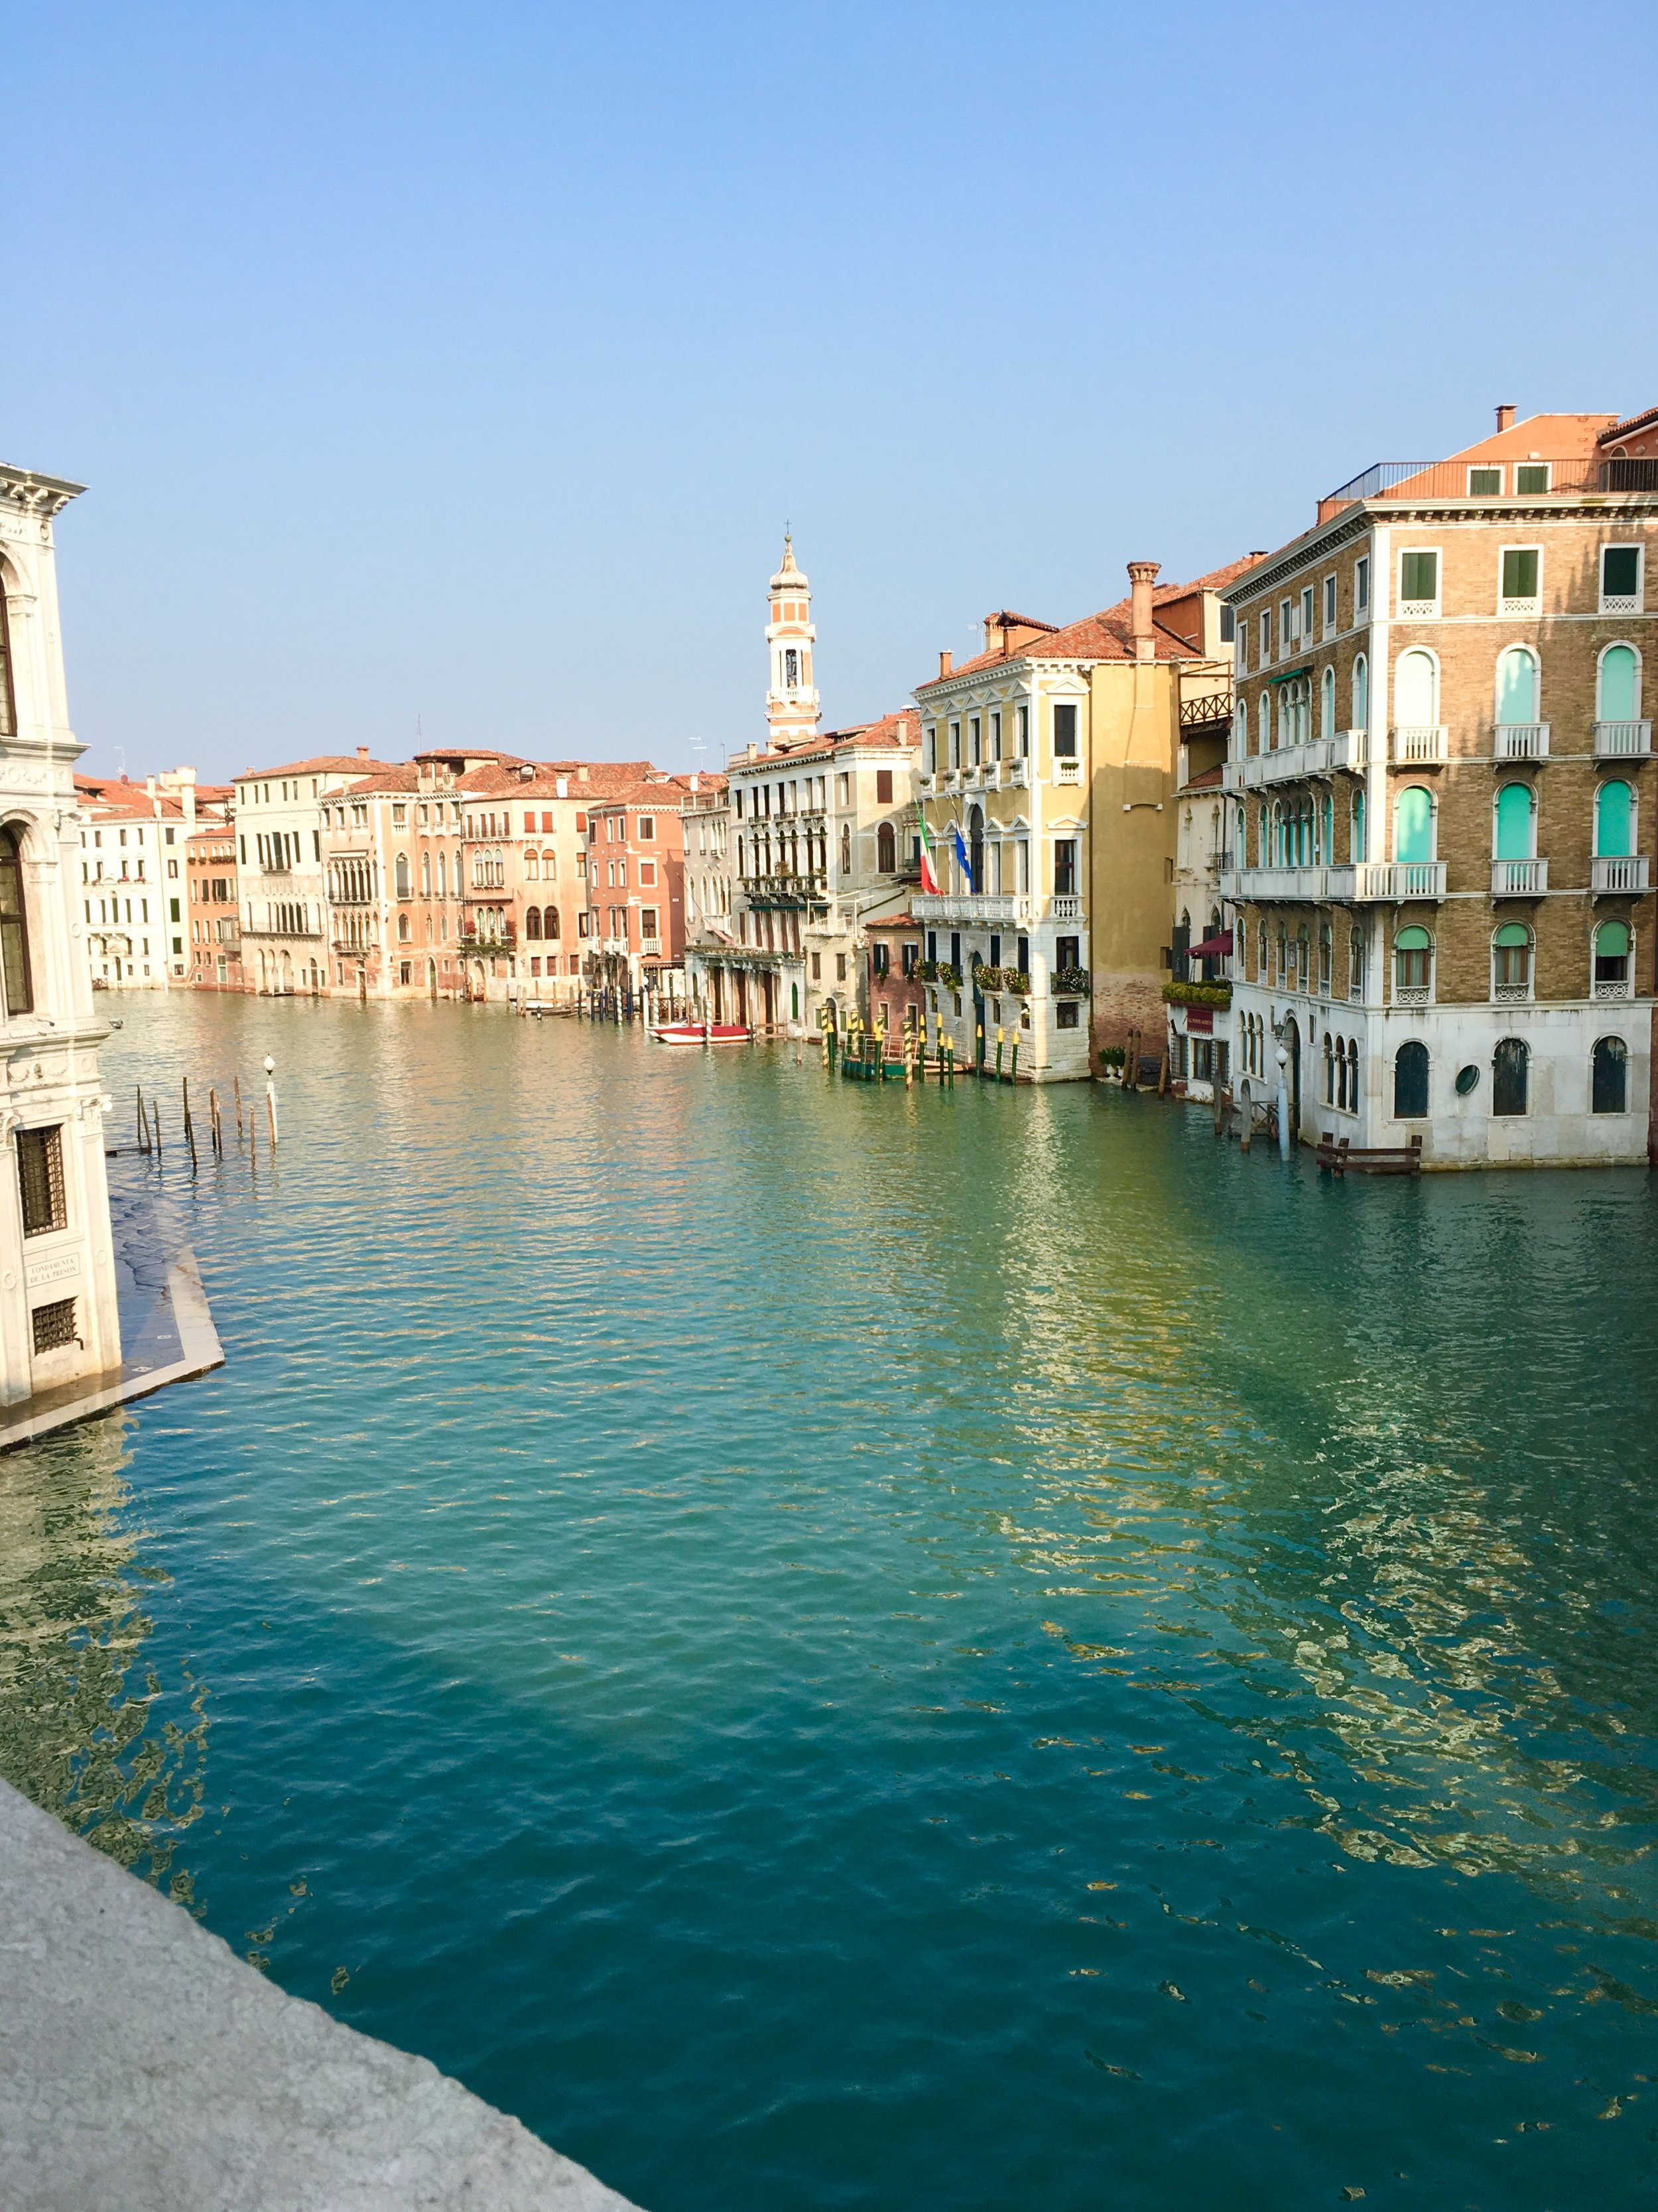 The beautiful Grand Canal.